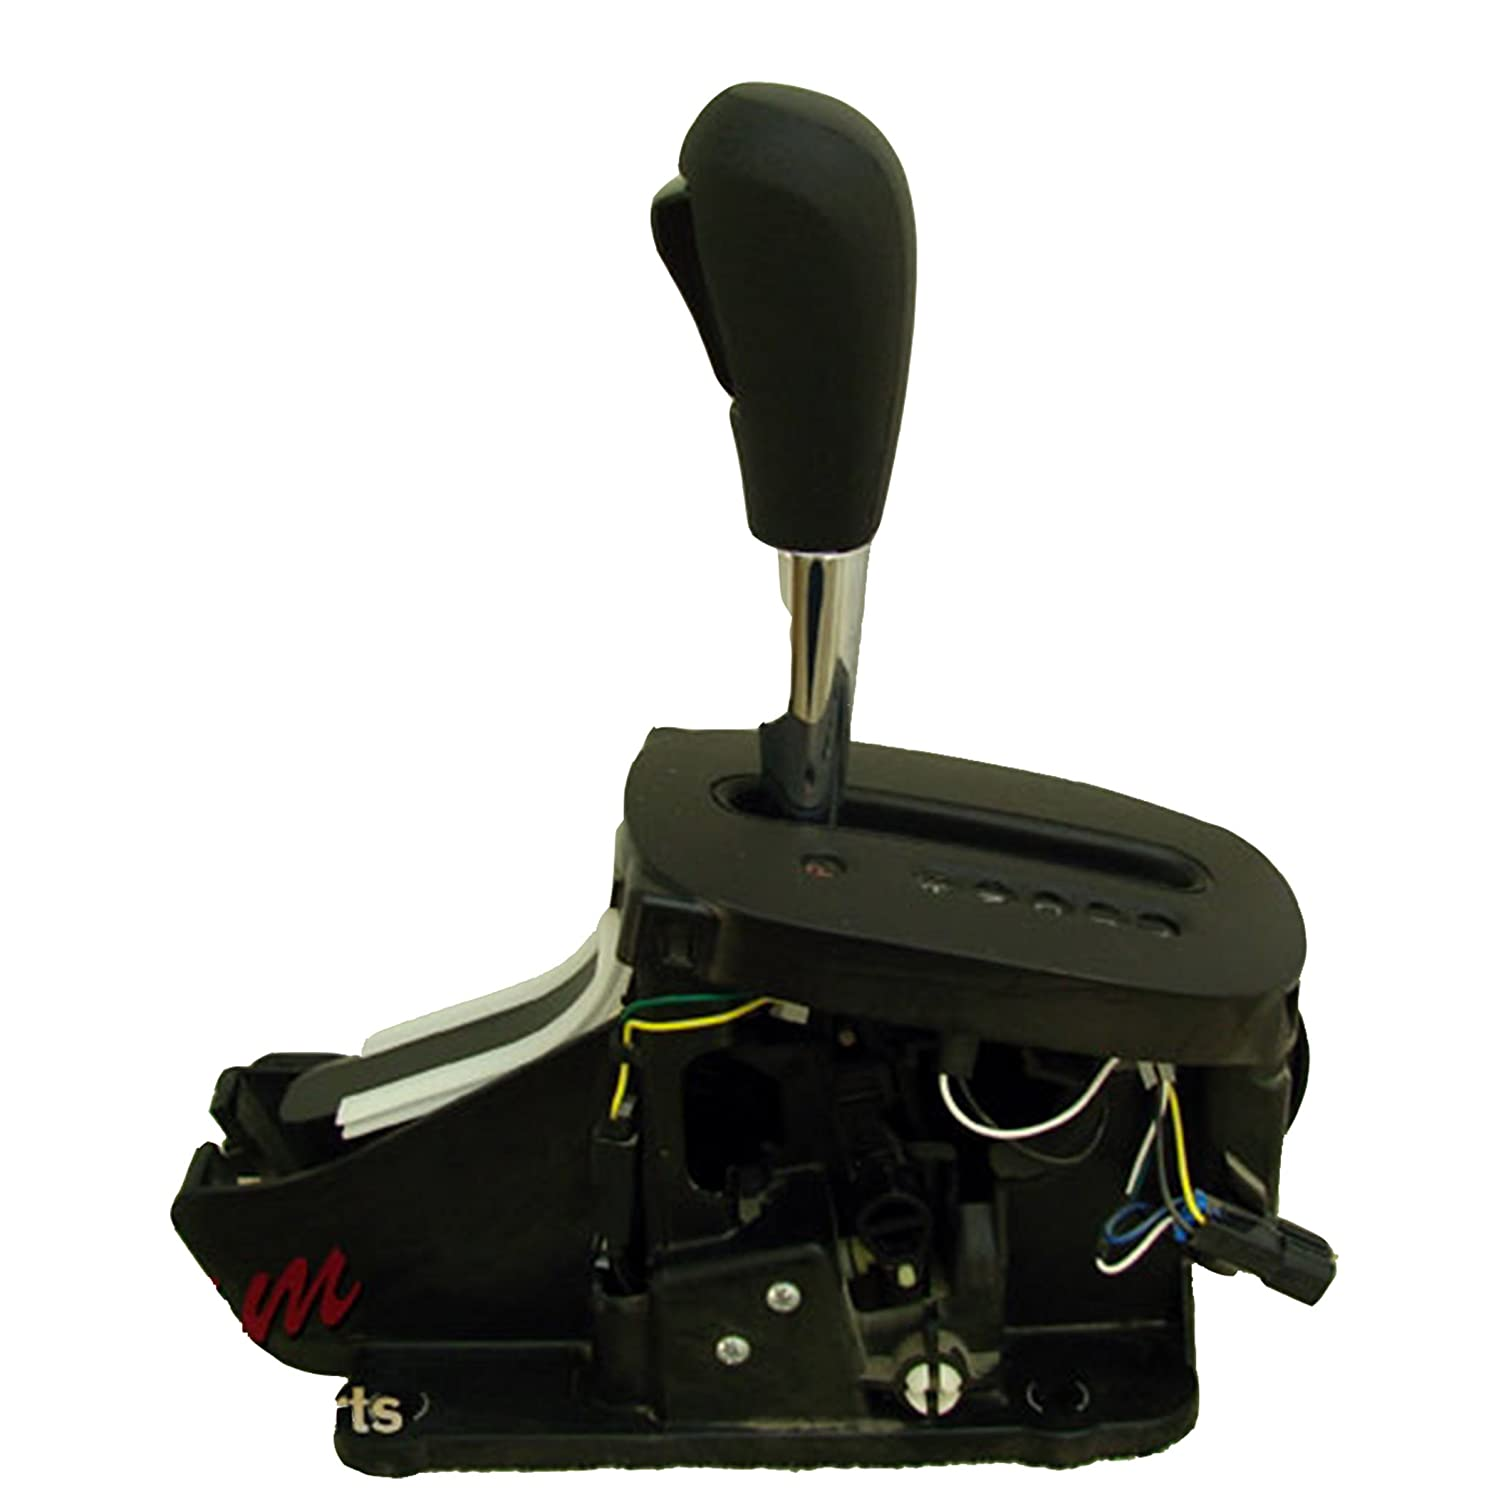 2008 Chevy Cobalt OEM Automatic Transmission Shift Assembly & Shifter (GM Part# 25864099)